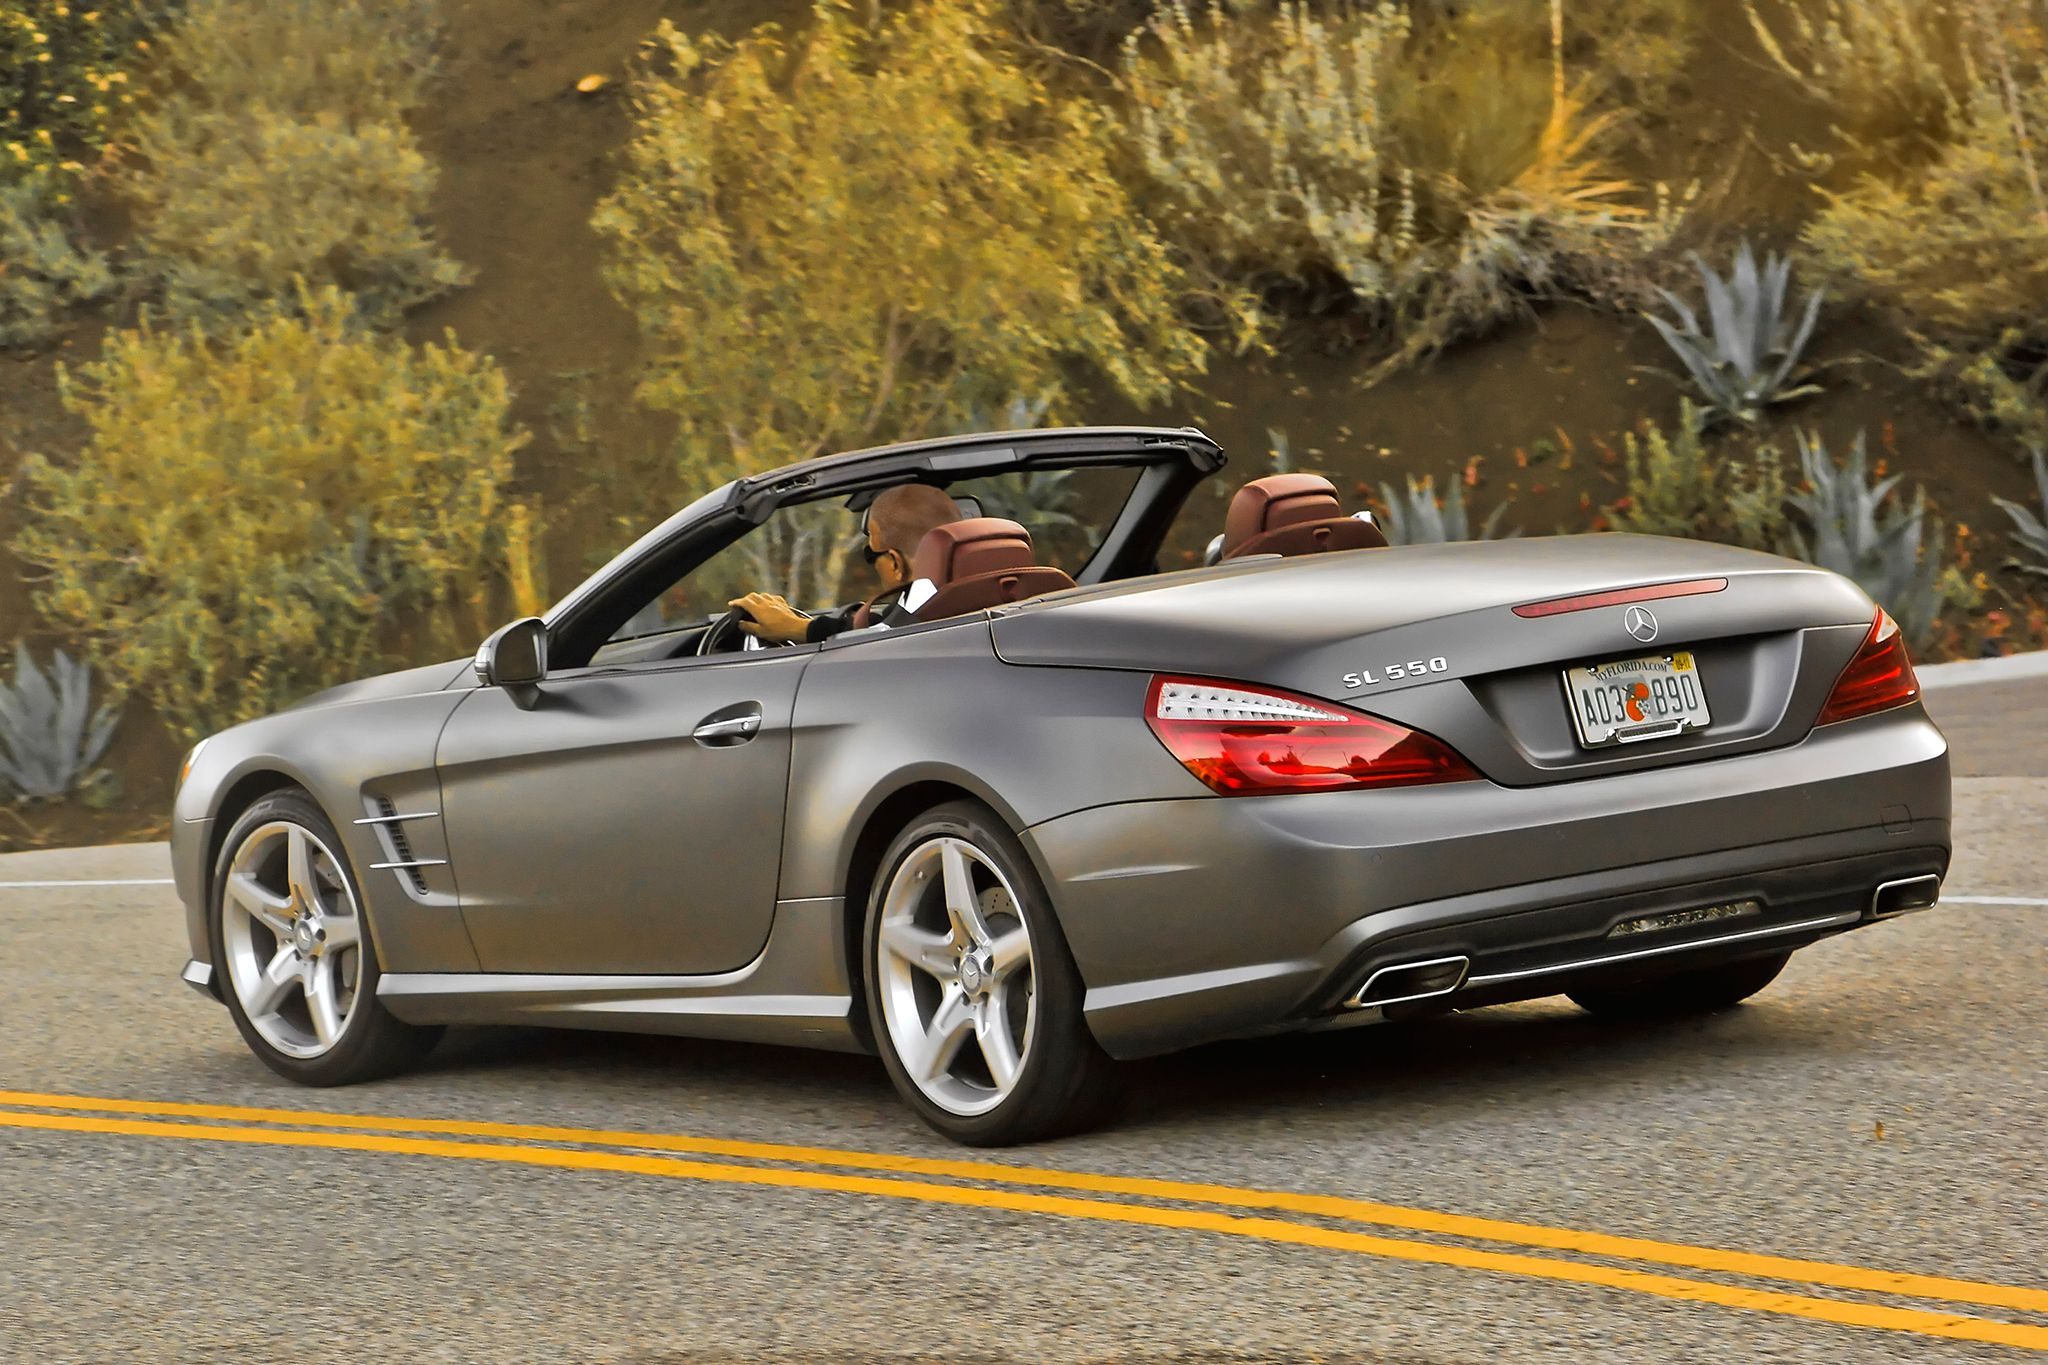 Sl550 amg price images diagram writing sample ideas and for Sl550 mercedes benz price